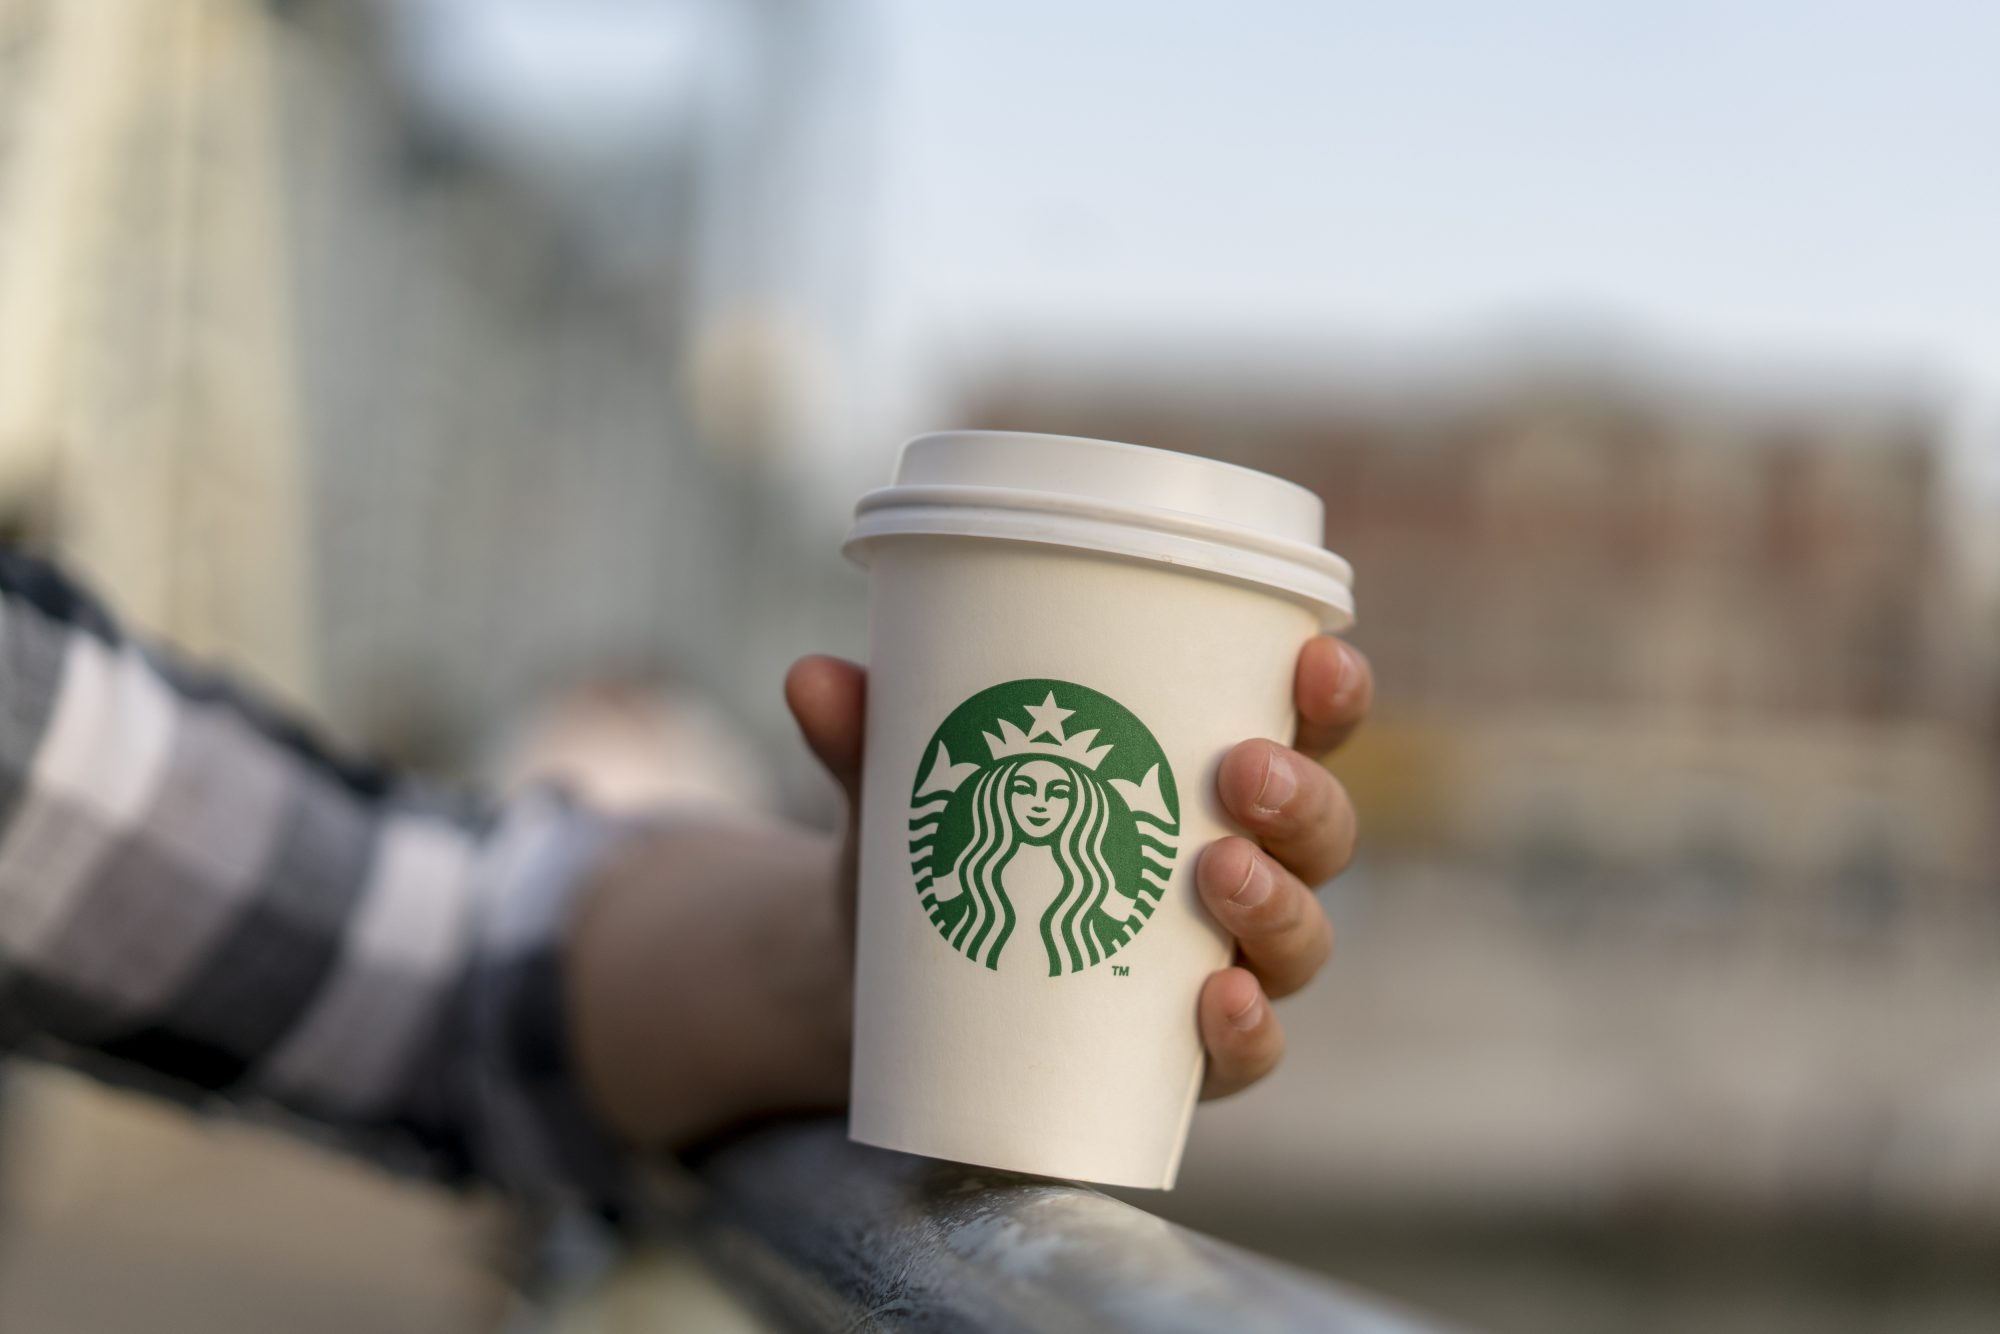 Starbucks Is Selling a New Keto-Friendly Drink—but Is it Healthy? Here's What a Nutritionist Says